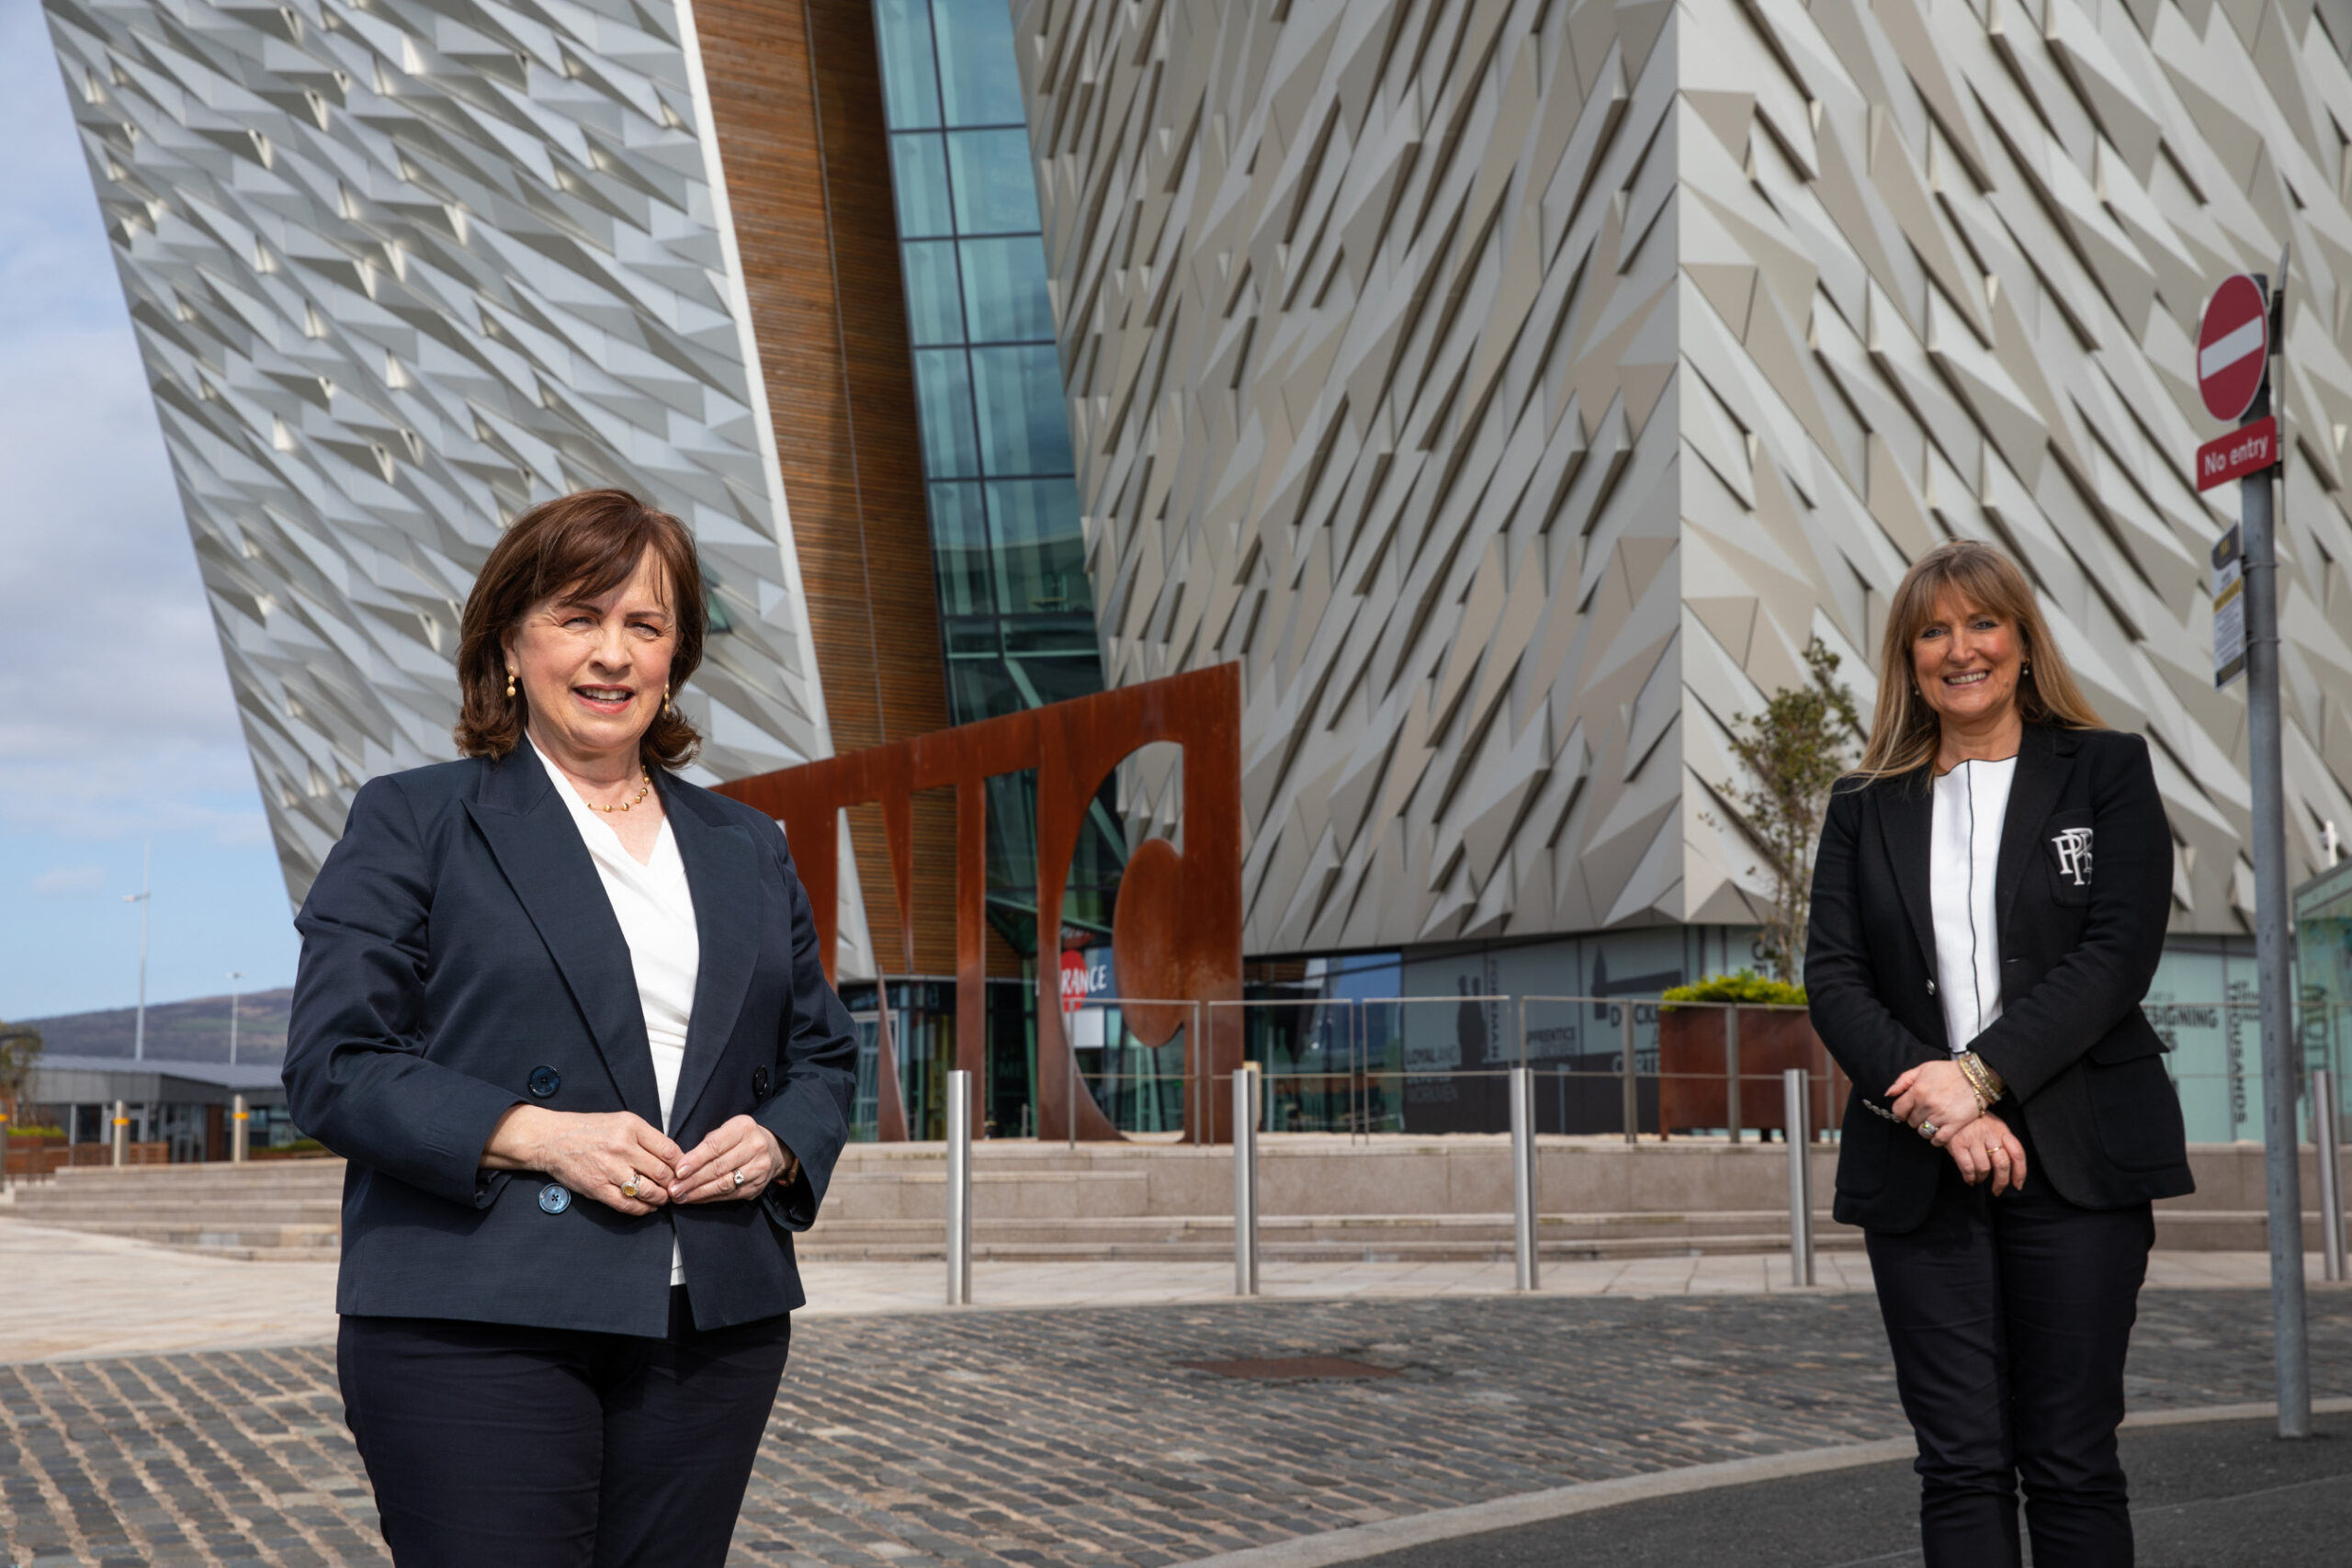 Minister - Titanic - Northern Ireland 'ready for the return of tourists' Minister Dodds | Newry Times - Newry headlines